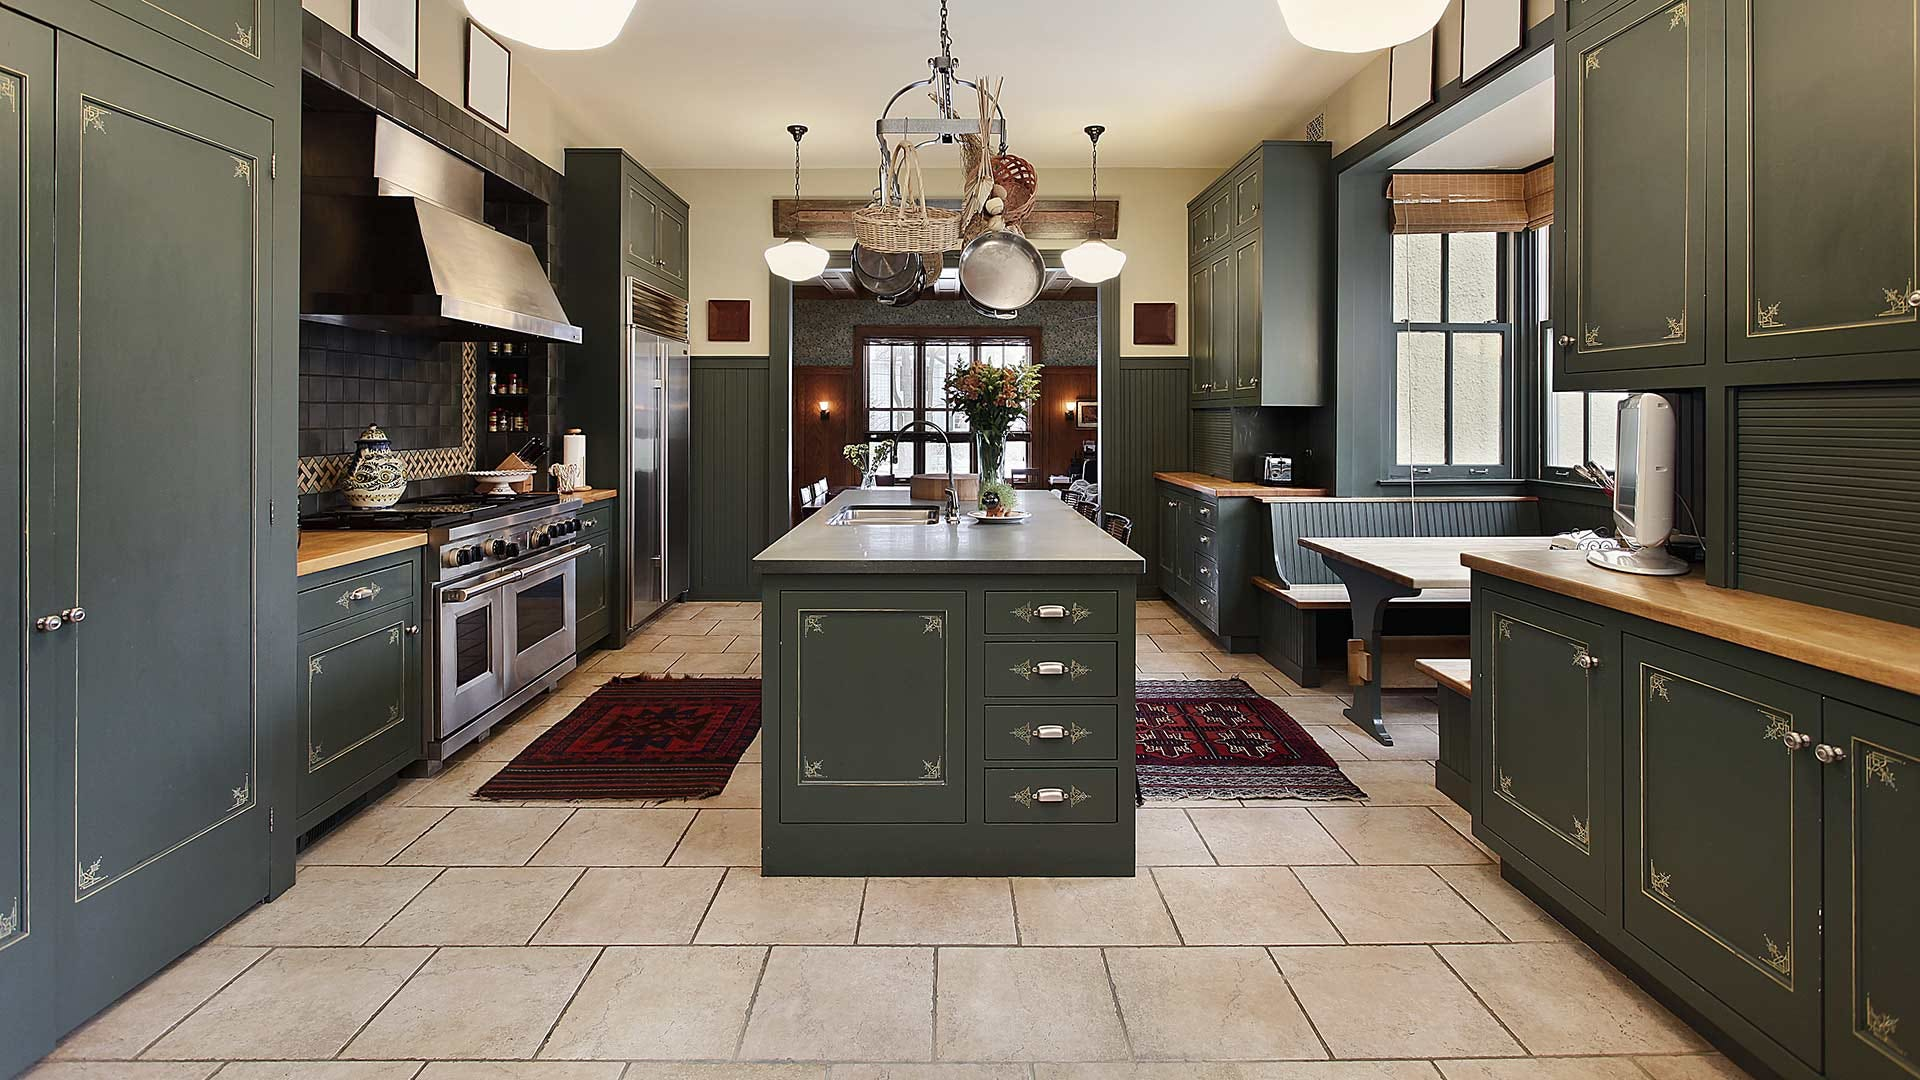 A beautiful kitchen with ceramic tiles and dark green cabinets.